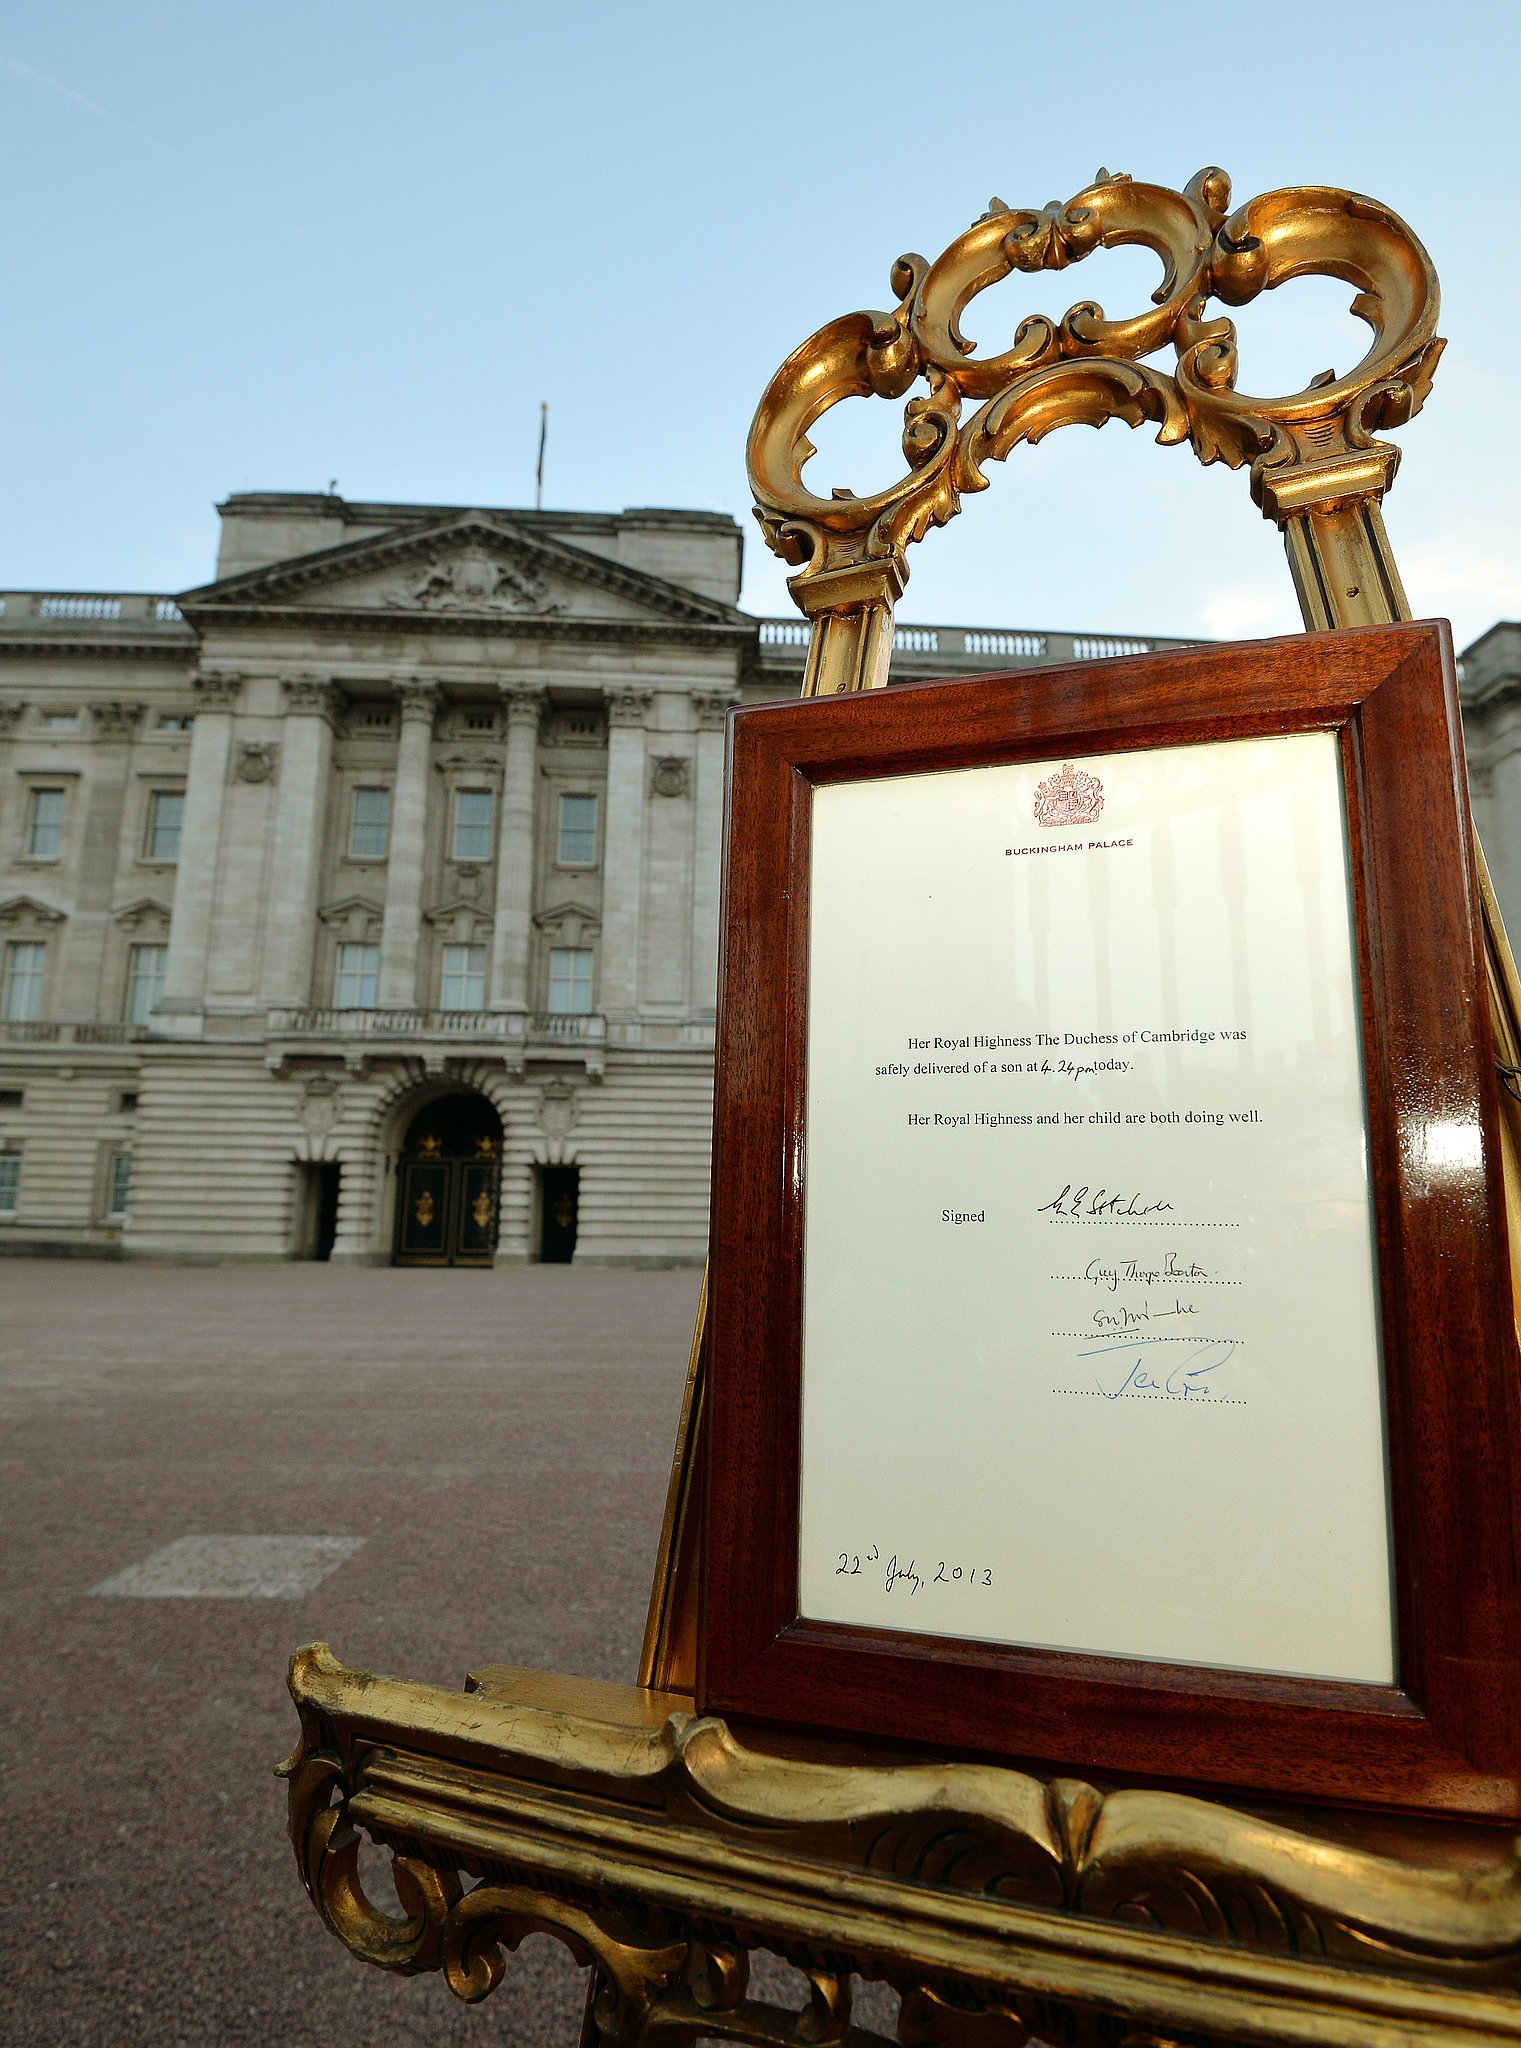 Following tradition, the birth announcement was placed on an easel outside Buckingham Palace.